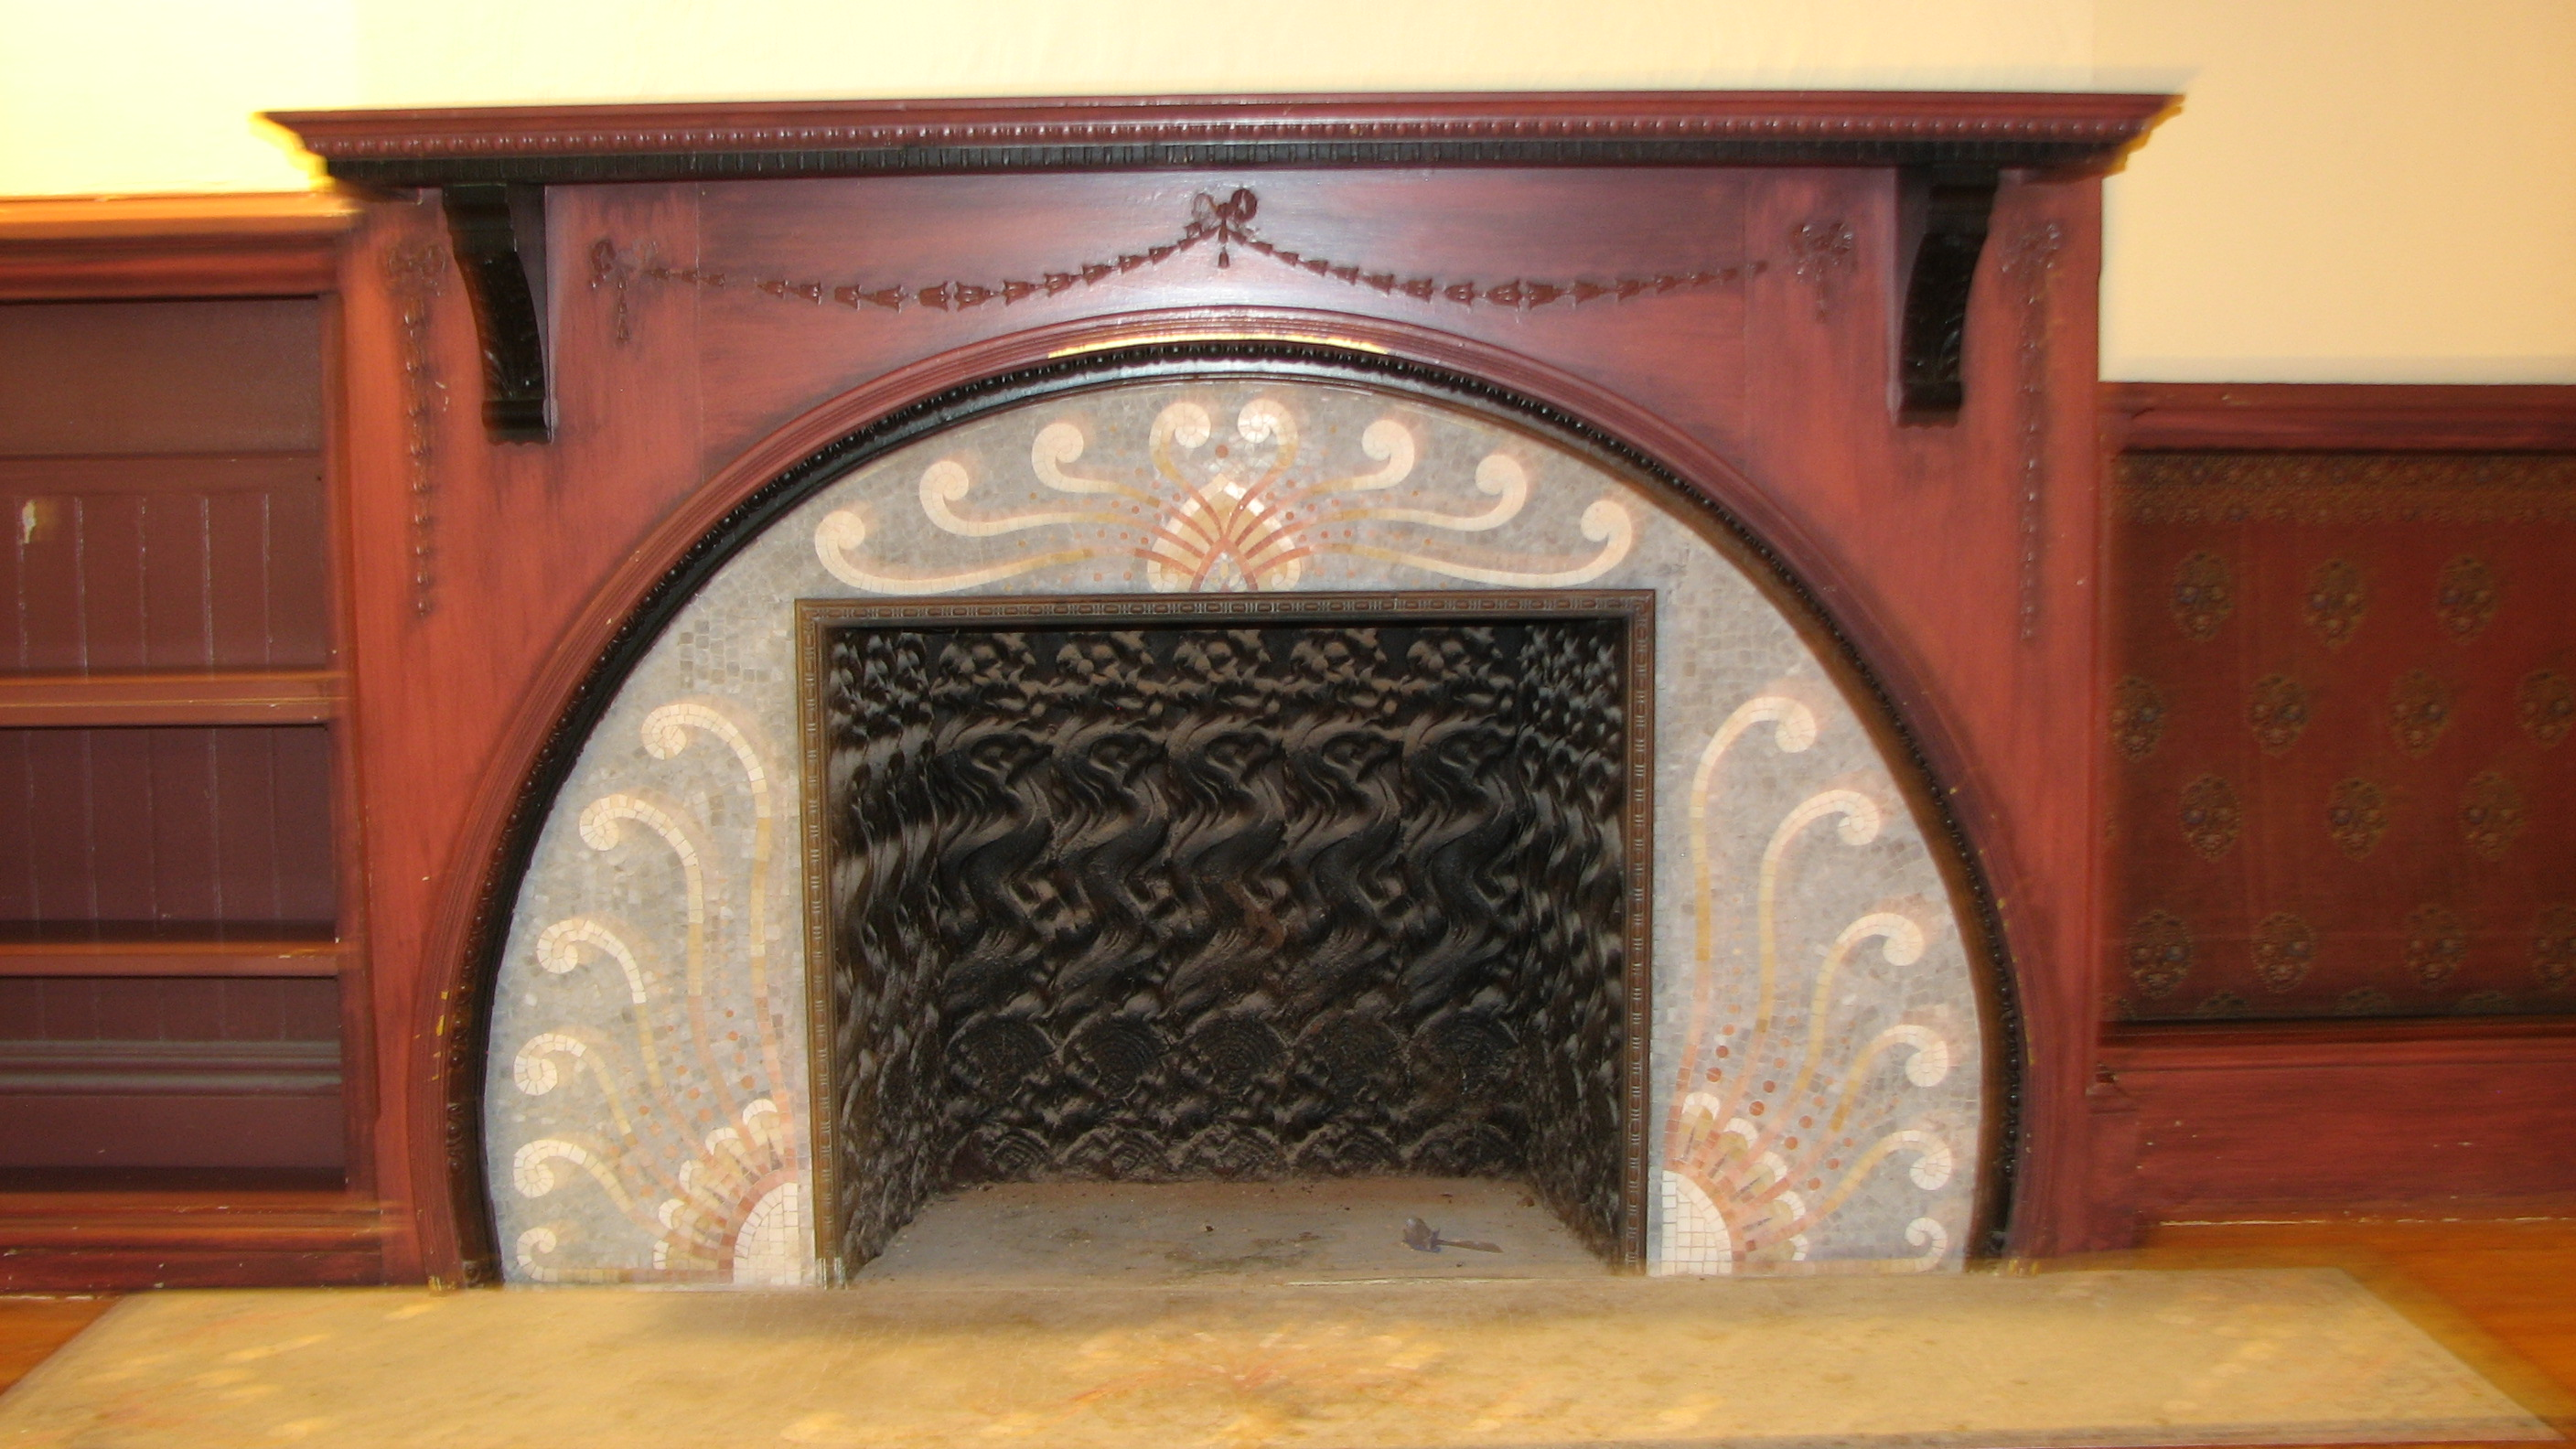 The house has unique fireplaces, including a beautiful mosaic hearth in the former ballroom.